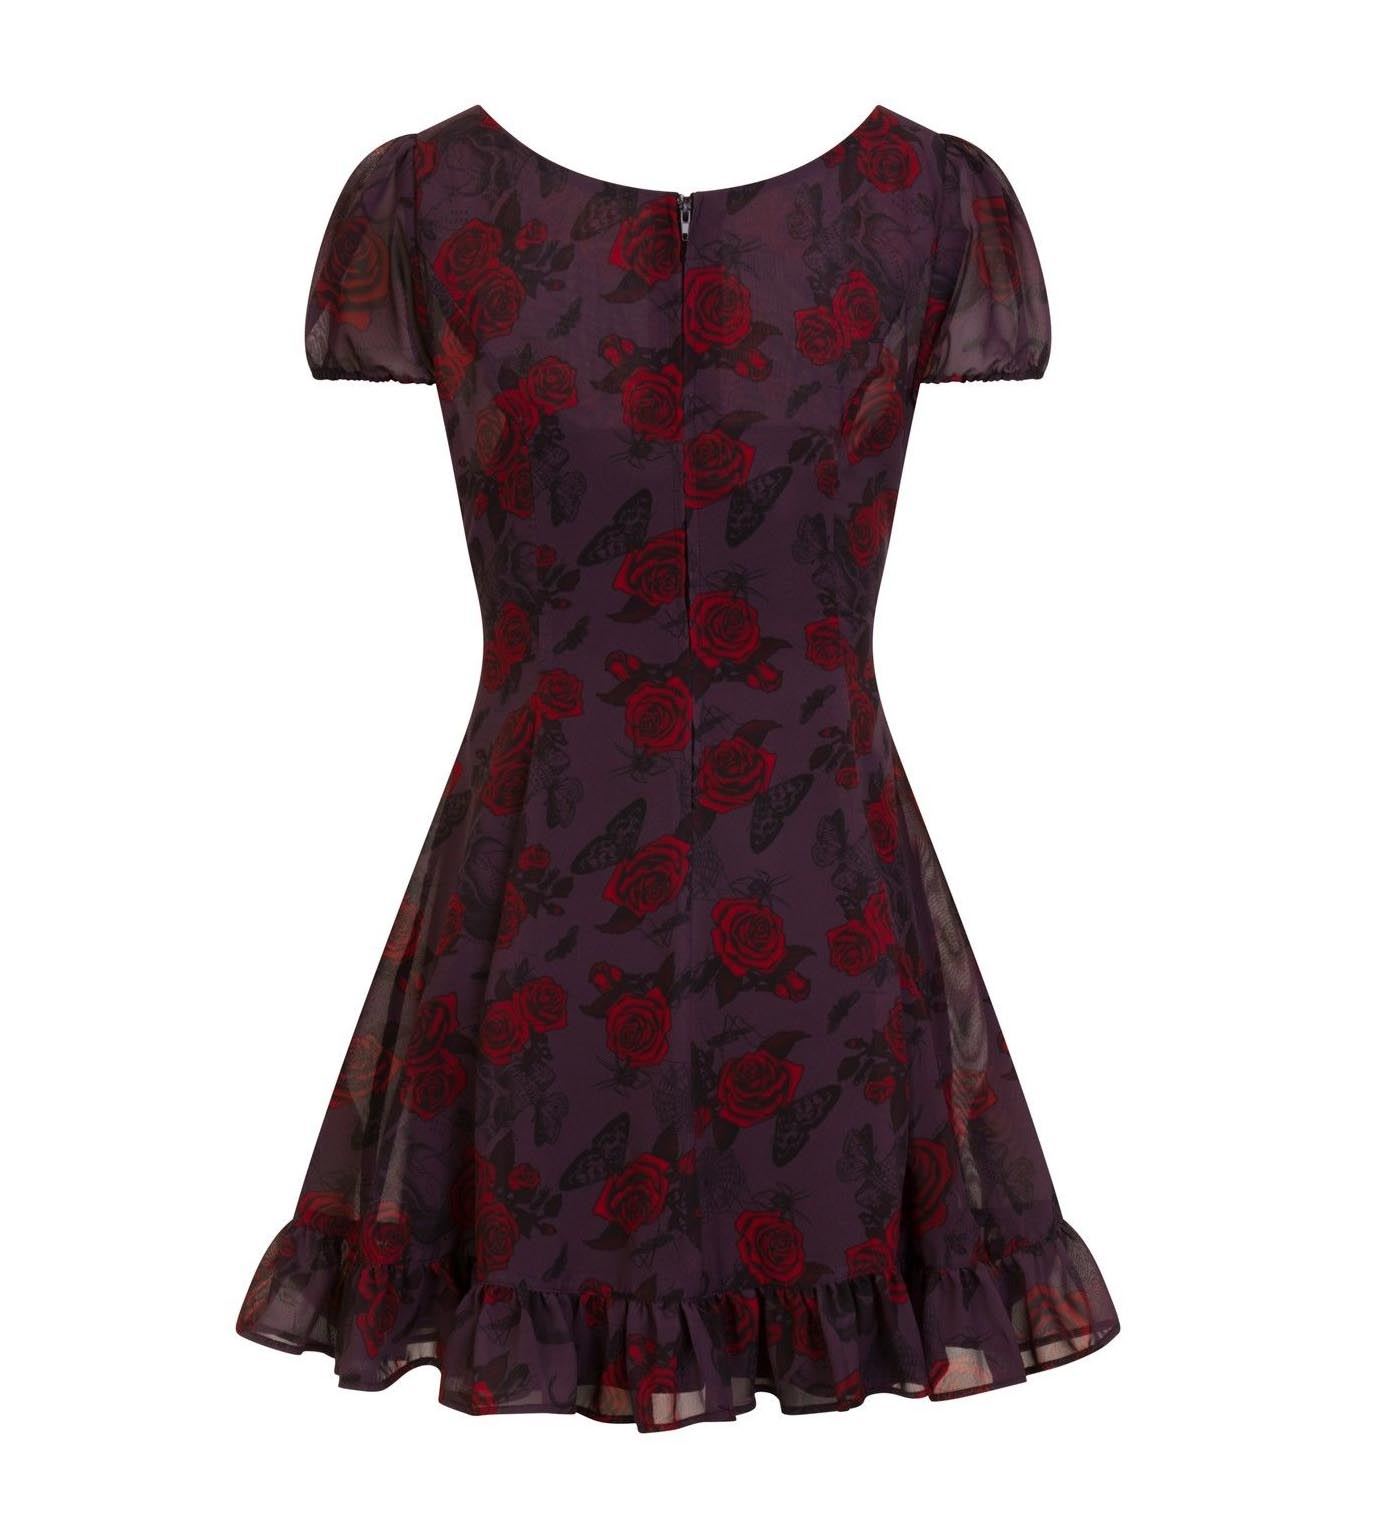 Hell-Bunny-Goth-Floaty-Mini-Dress-BUGS-amp-ROSES-Skulls-Butterfly-Purple-All-Sizes thumbnail 31